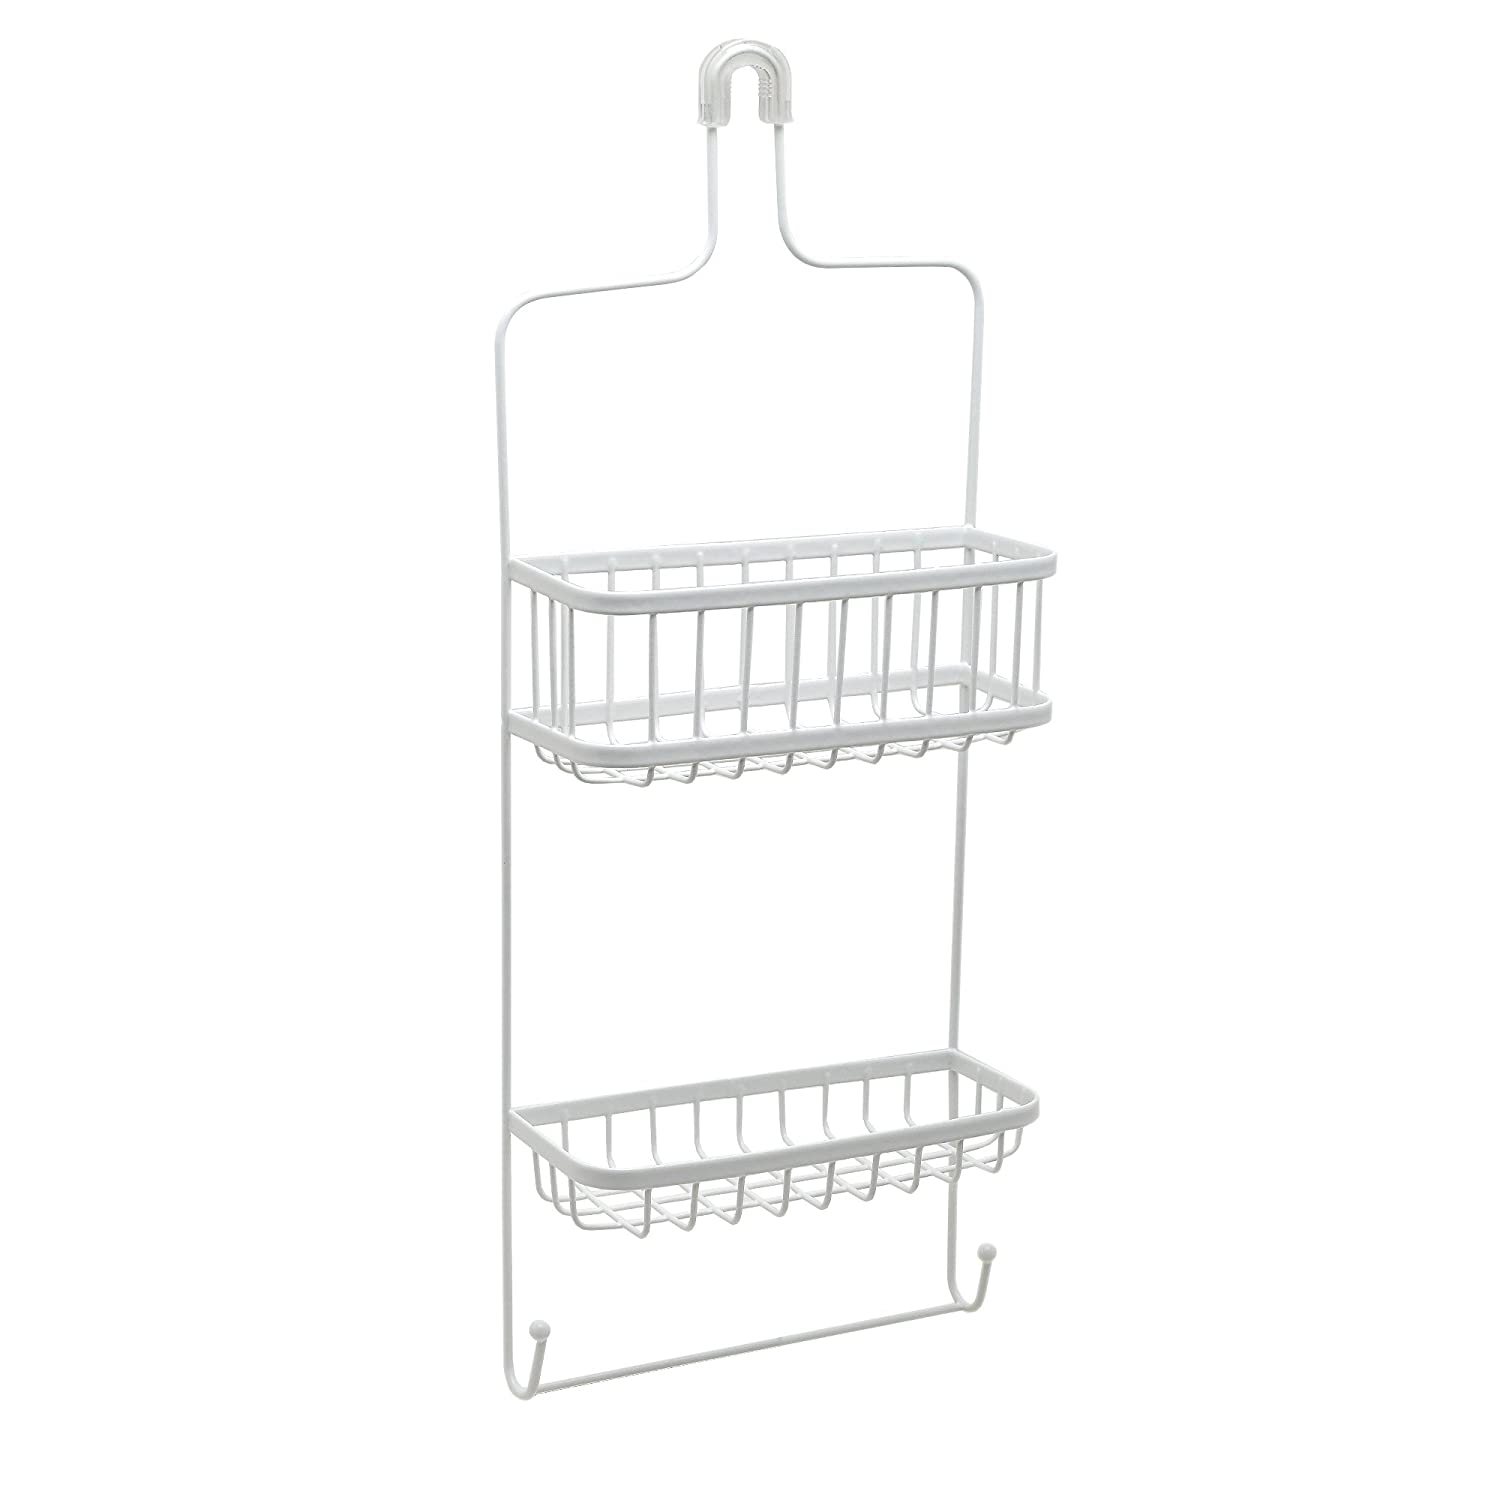 Zenith Premium Shower Head Caddy, White ZENITH PRODUCTS 7617WW